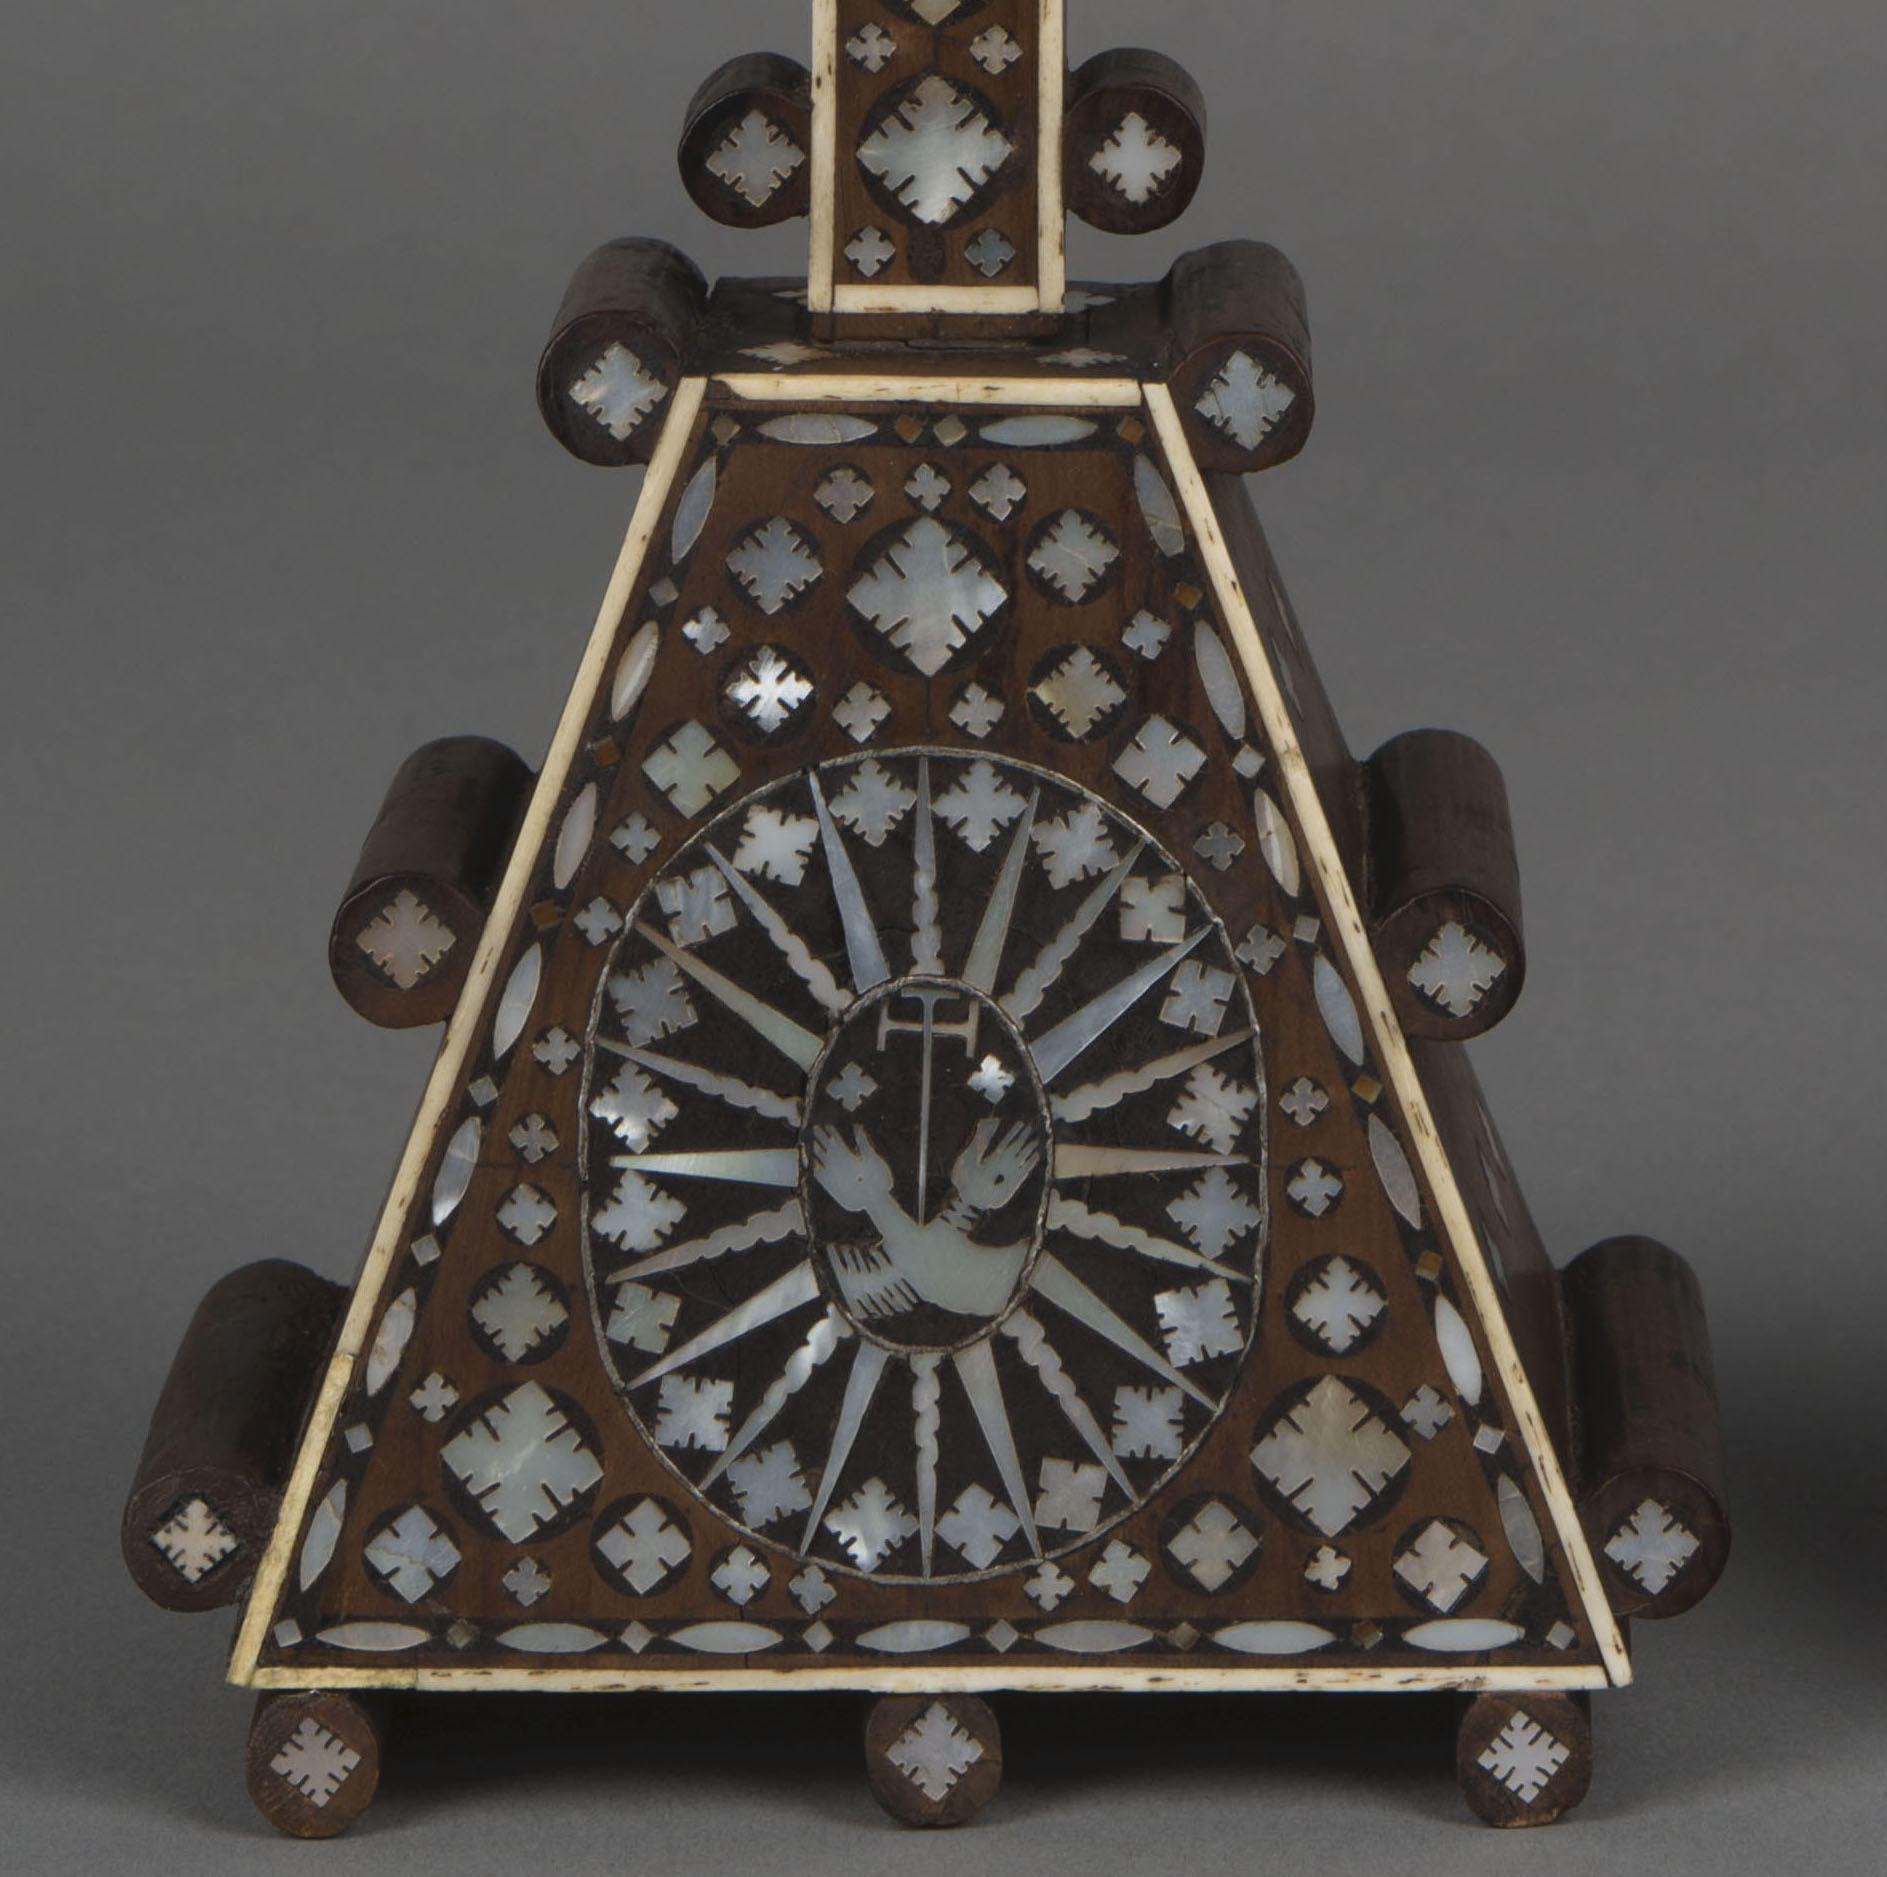 Italian, Venice, Cross, 17th century, showing a detail of the Franciscan Coat of Arms